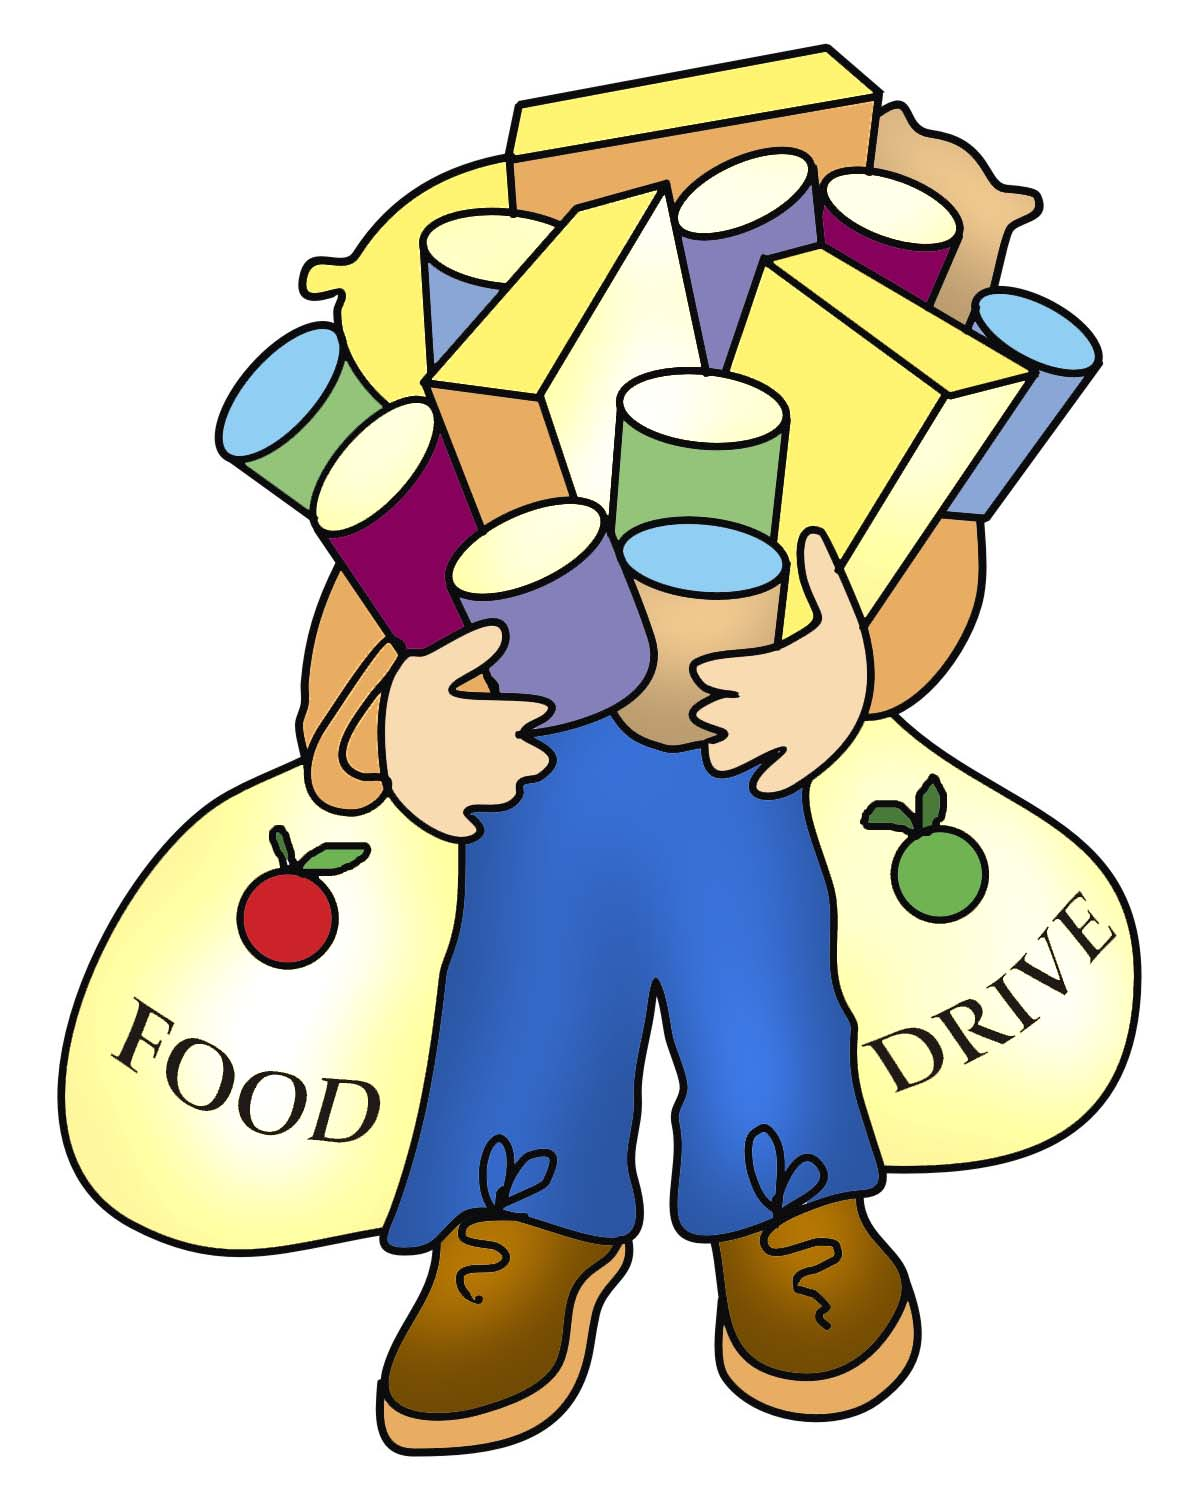 Food bank drive clipart png freeuse download Food Pantry Donations Clipart - Clipart Kid png freeuse download